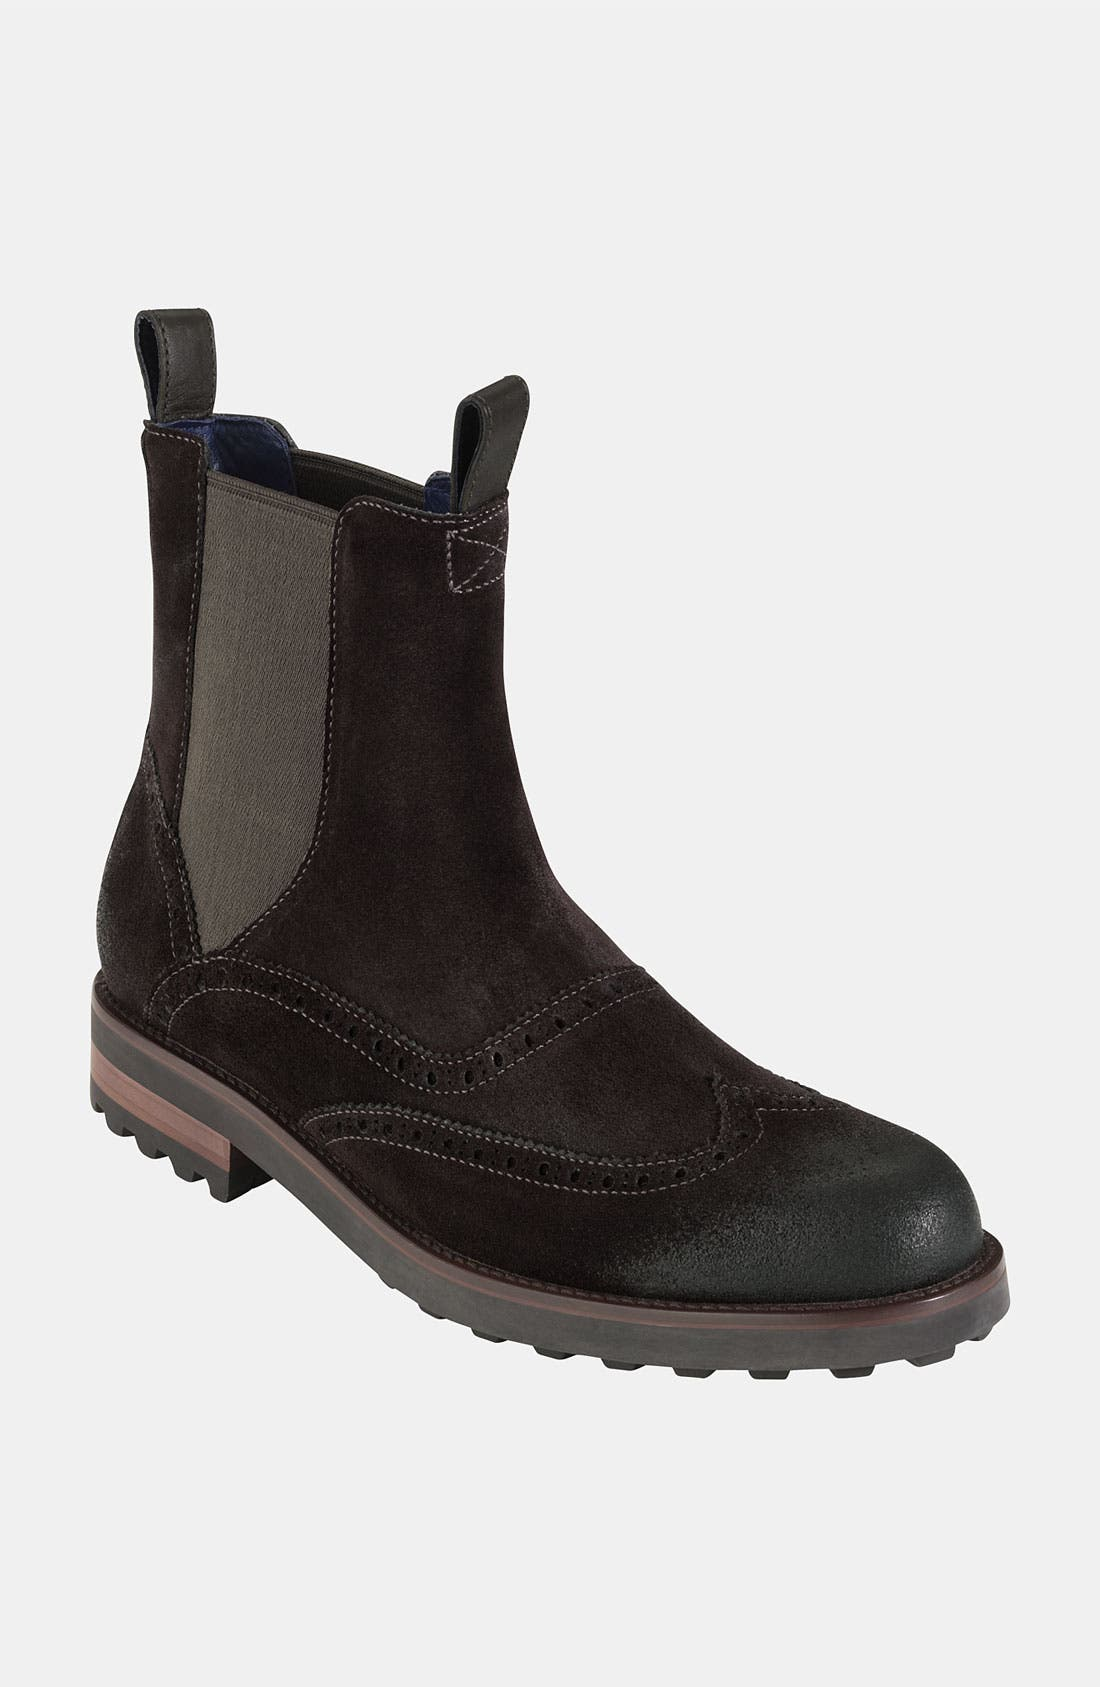 Alternate Image 1 Selected - Cole Haan 'Air Grayson' Wingtip Chelsea Boot